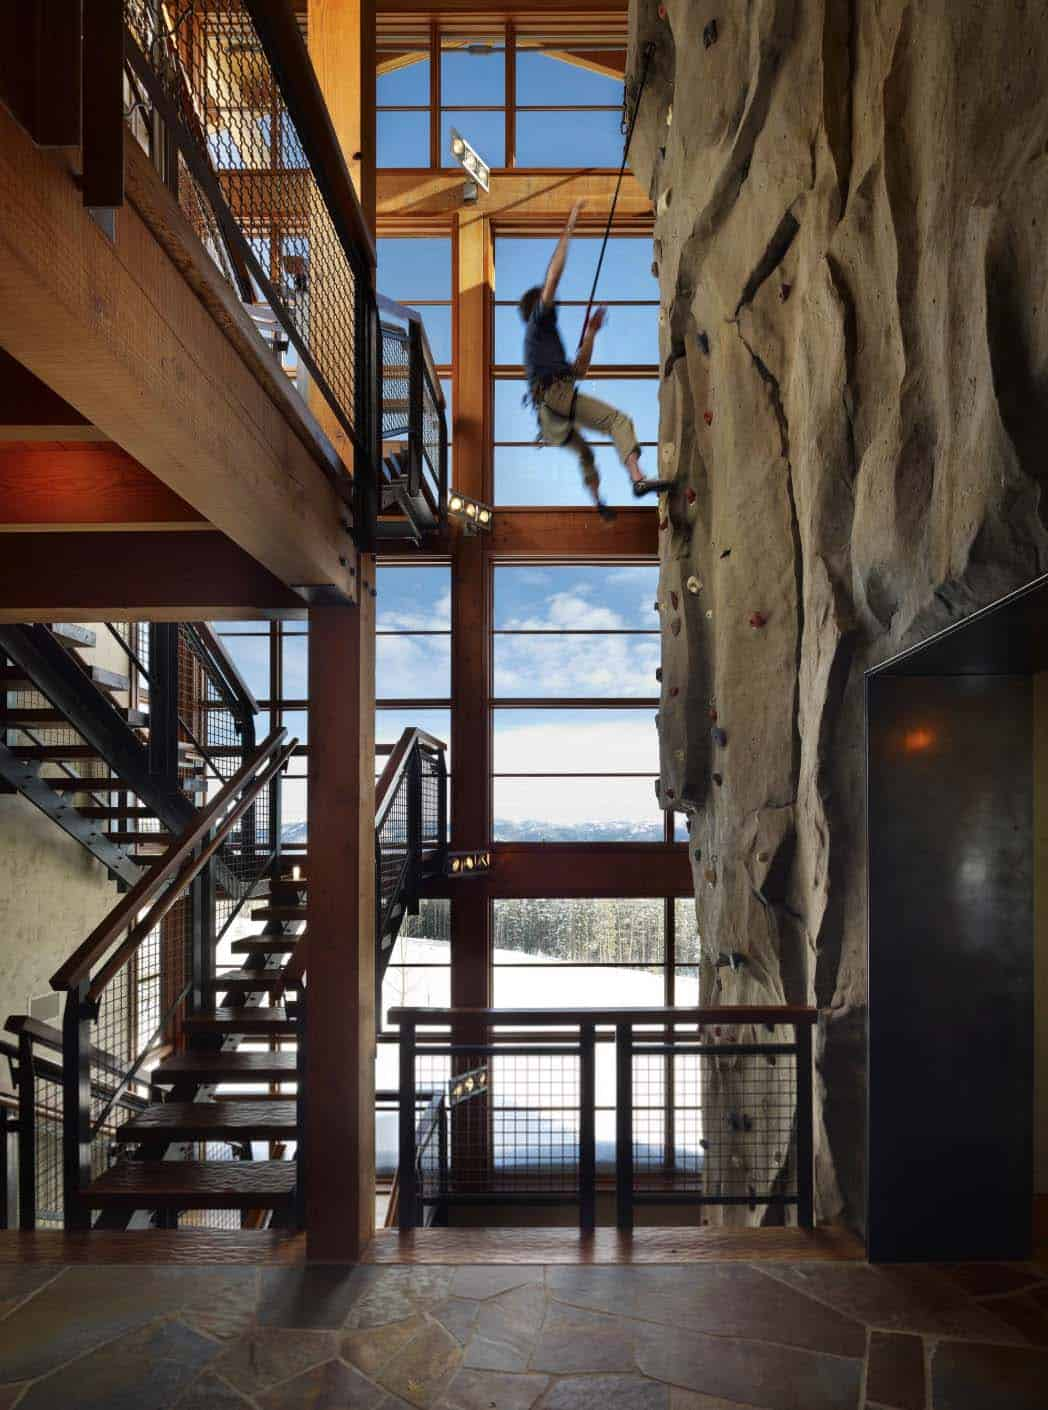 climbing-wall-in-action-at-stair-tower-industrial-staircase